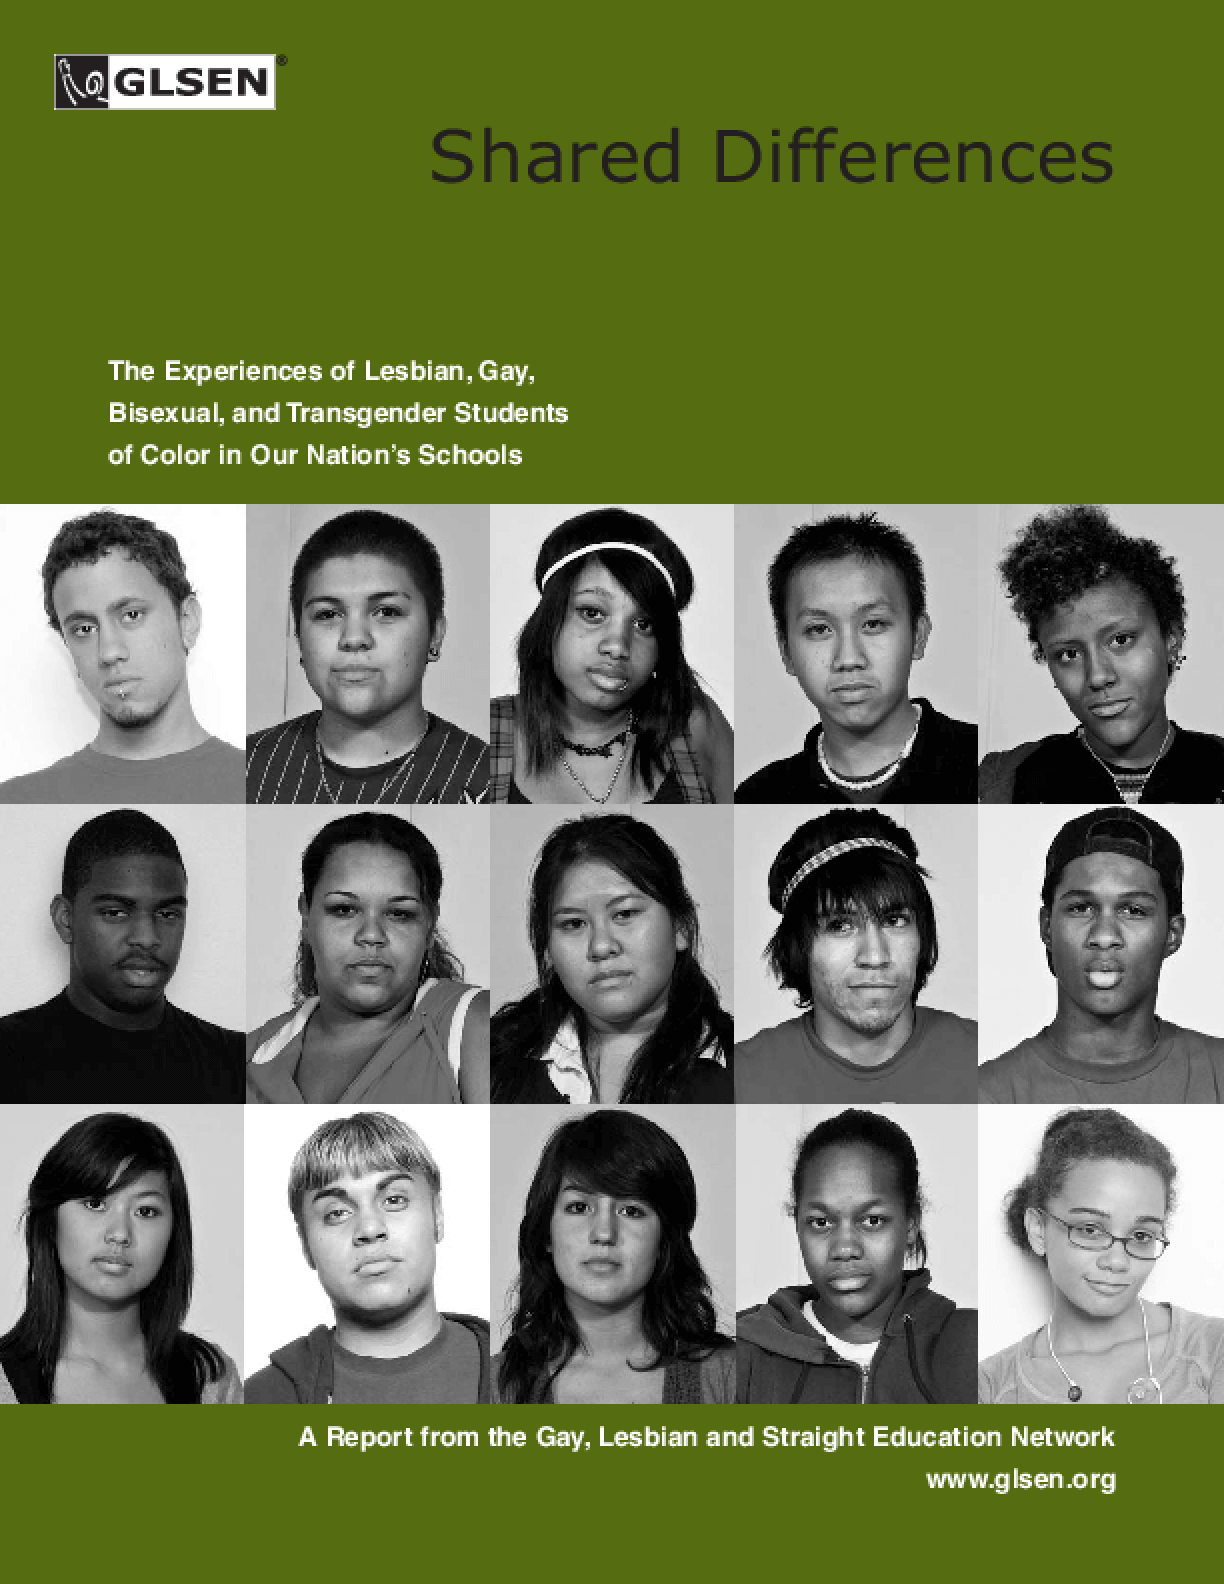 Shared Differences: The Experiences of Lesbian, Gay, Bisexual and Transgender Students of Color in Our Nation's Schools